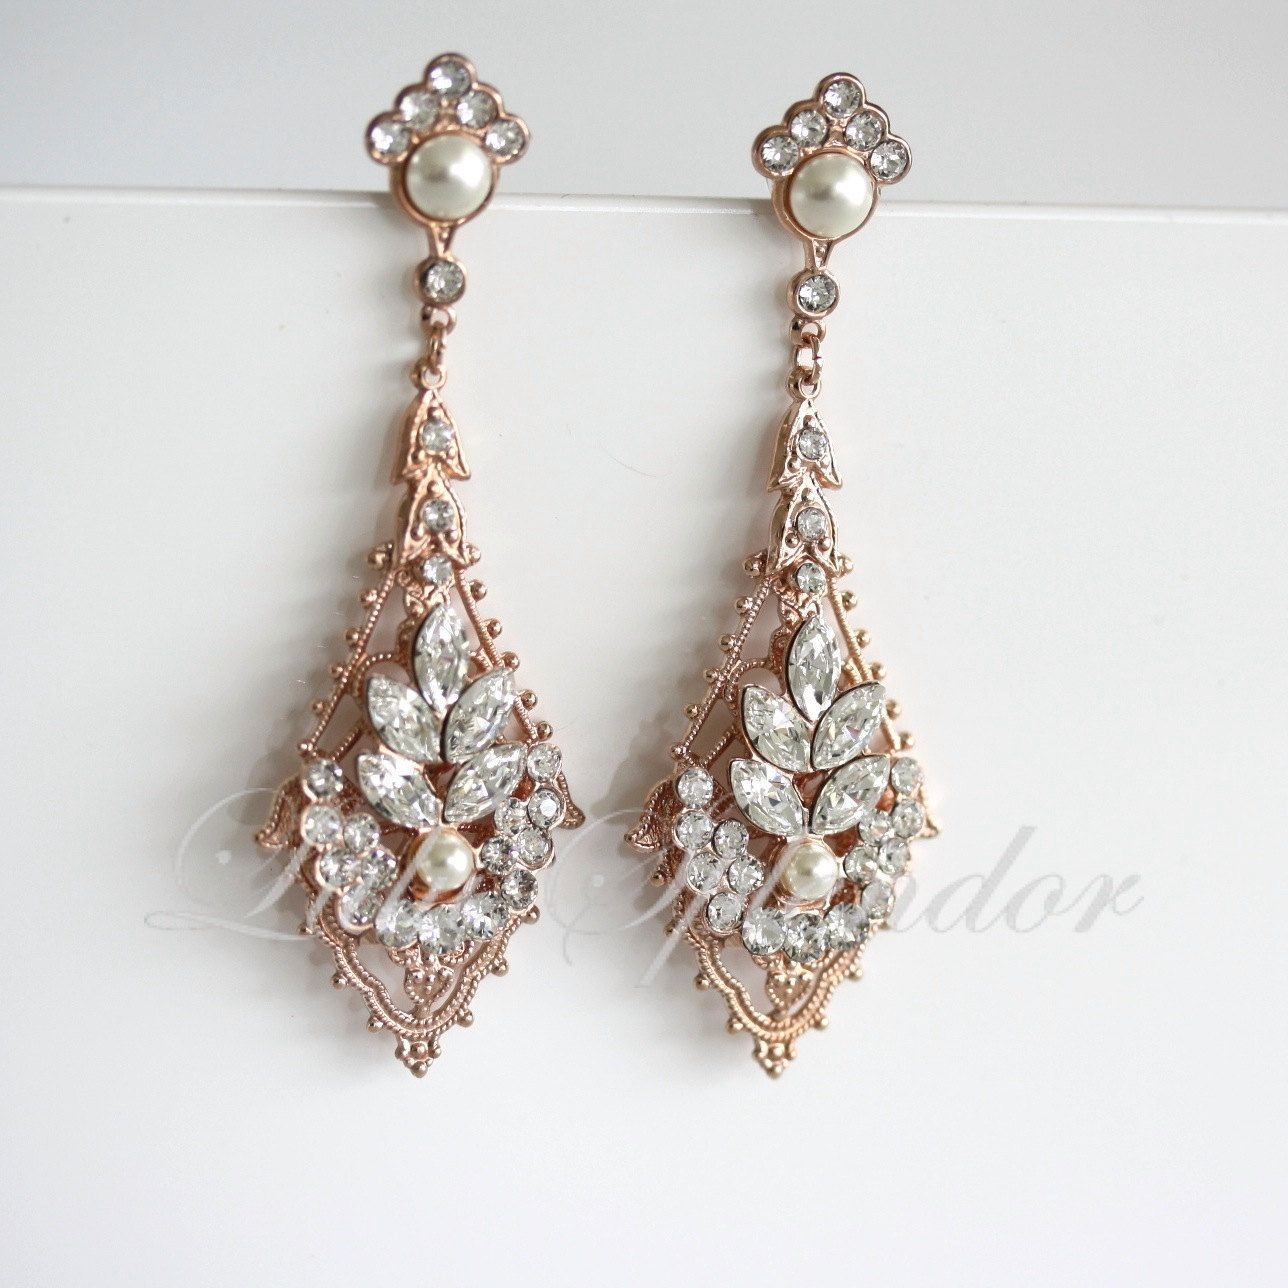 Rose gold wedding earrings chandelier bridal earrings swarovski rose gold wedding earrings chandelier bridal earrings swarovski pearl crystal art deco wedding earrings vintage wedding jewelry ursula arubaitofo Choice Image